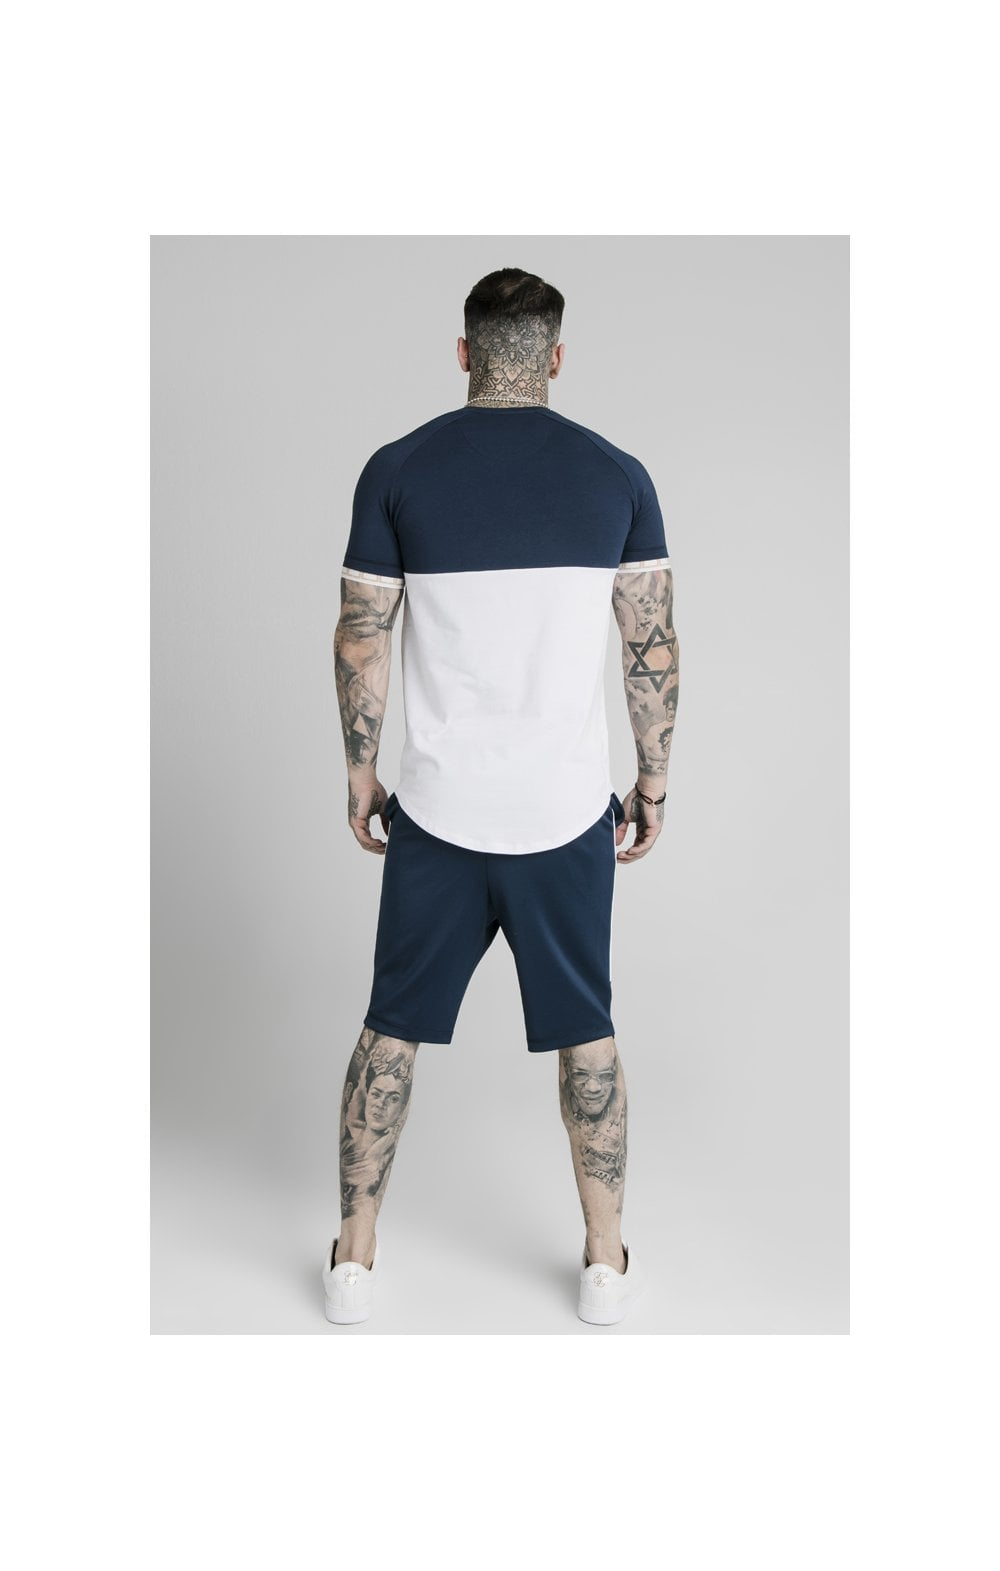 SikSilk S/S Cut & Sew Tech Tee - Navy & White (4)